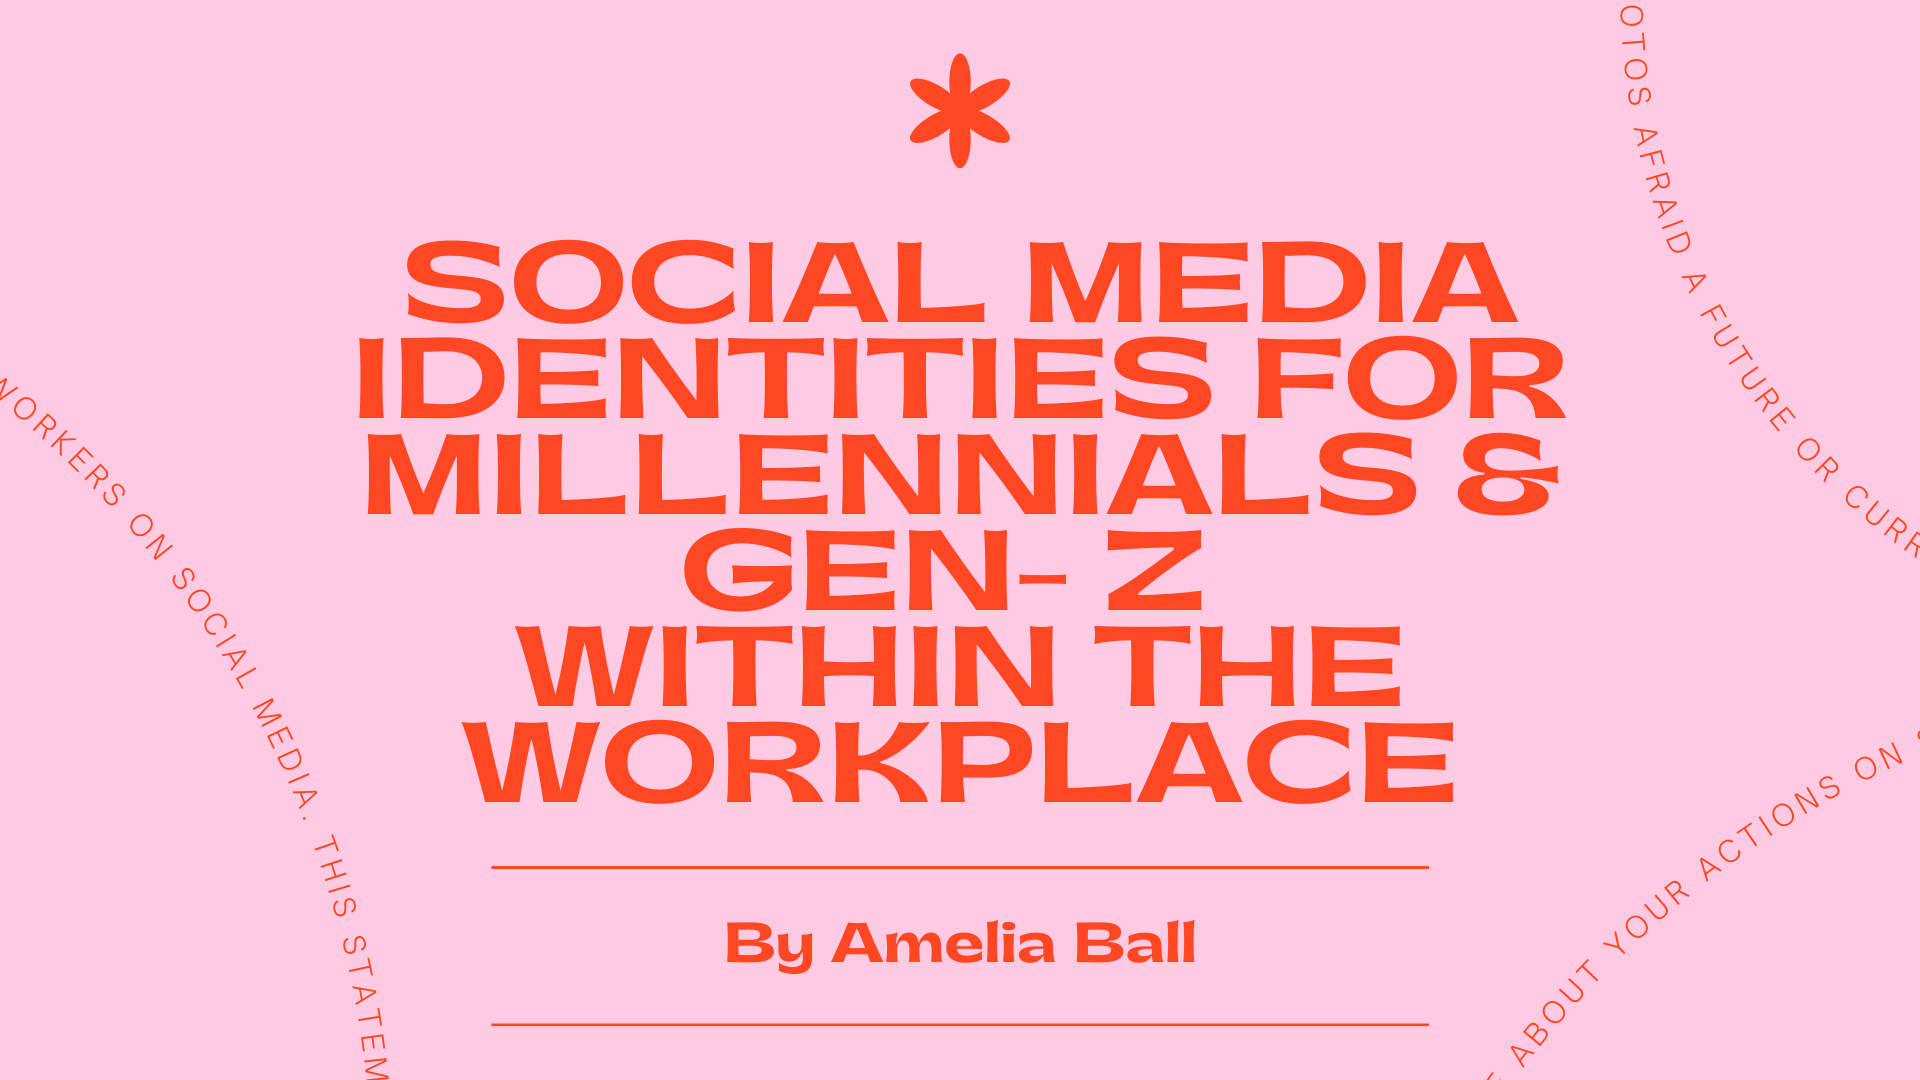 Social Media Identities for Millennials & Gen-Z Within the Workplace